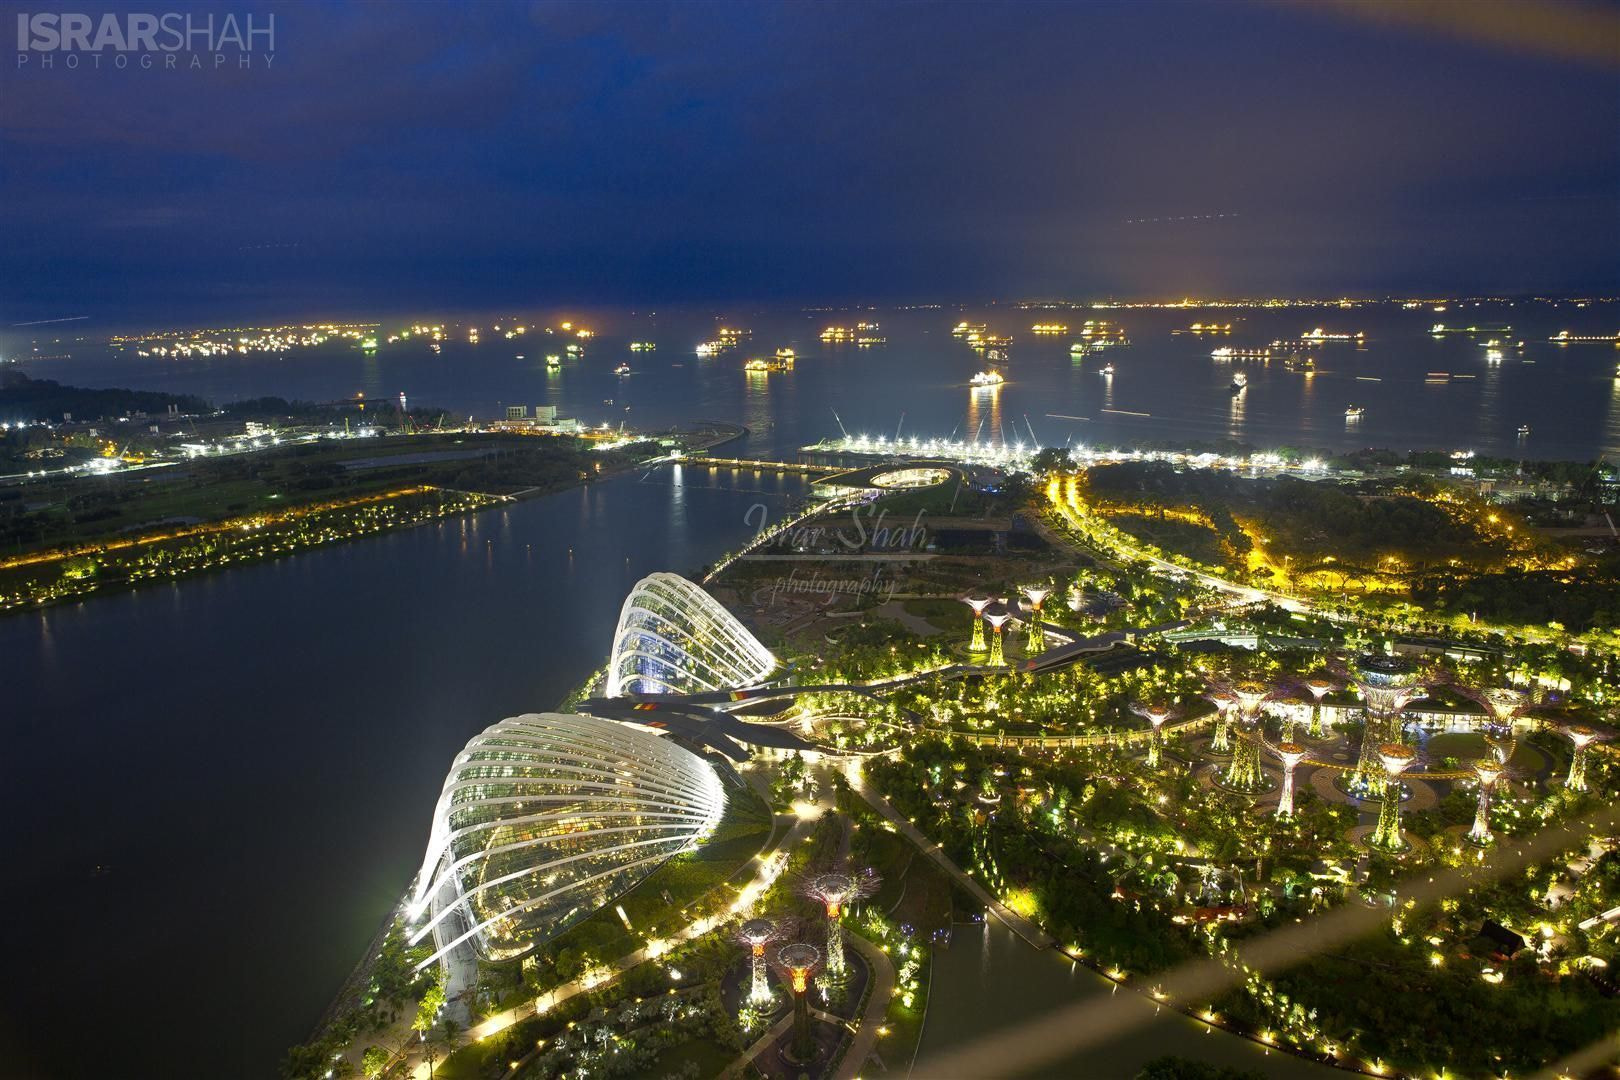 Photograph Singapore by Israr Shah on 500px